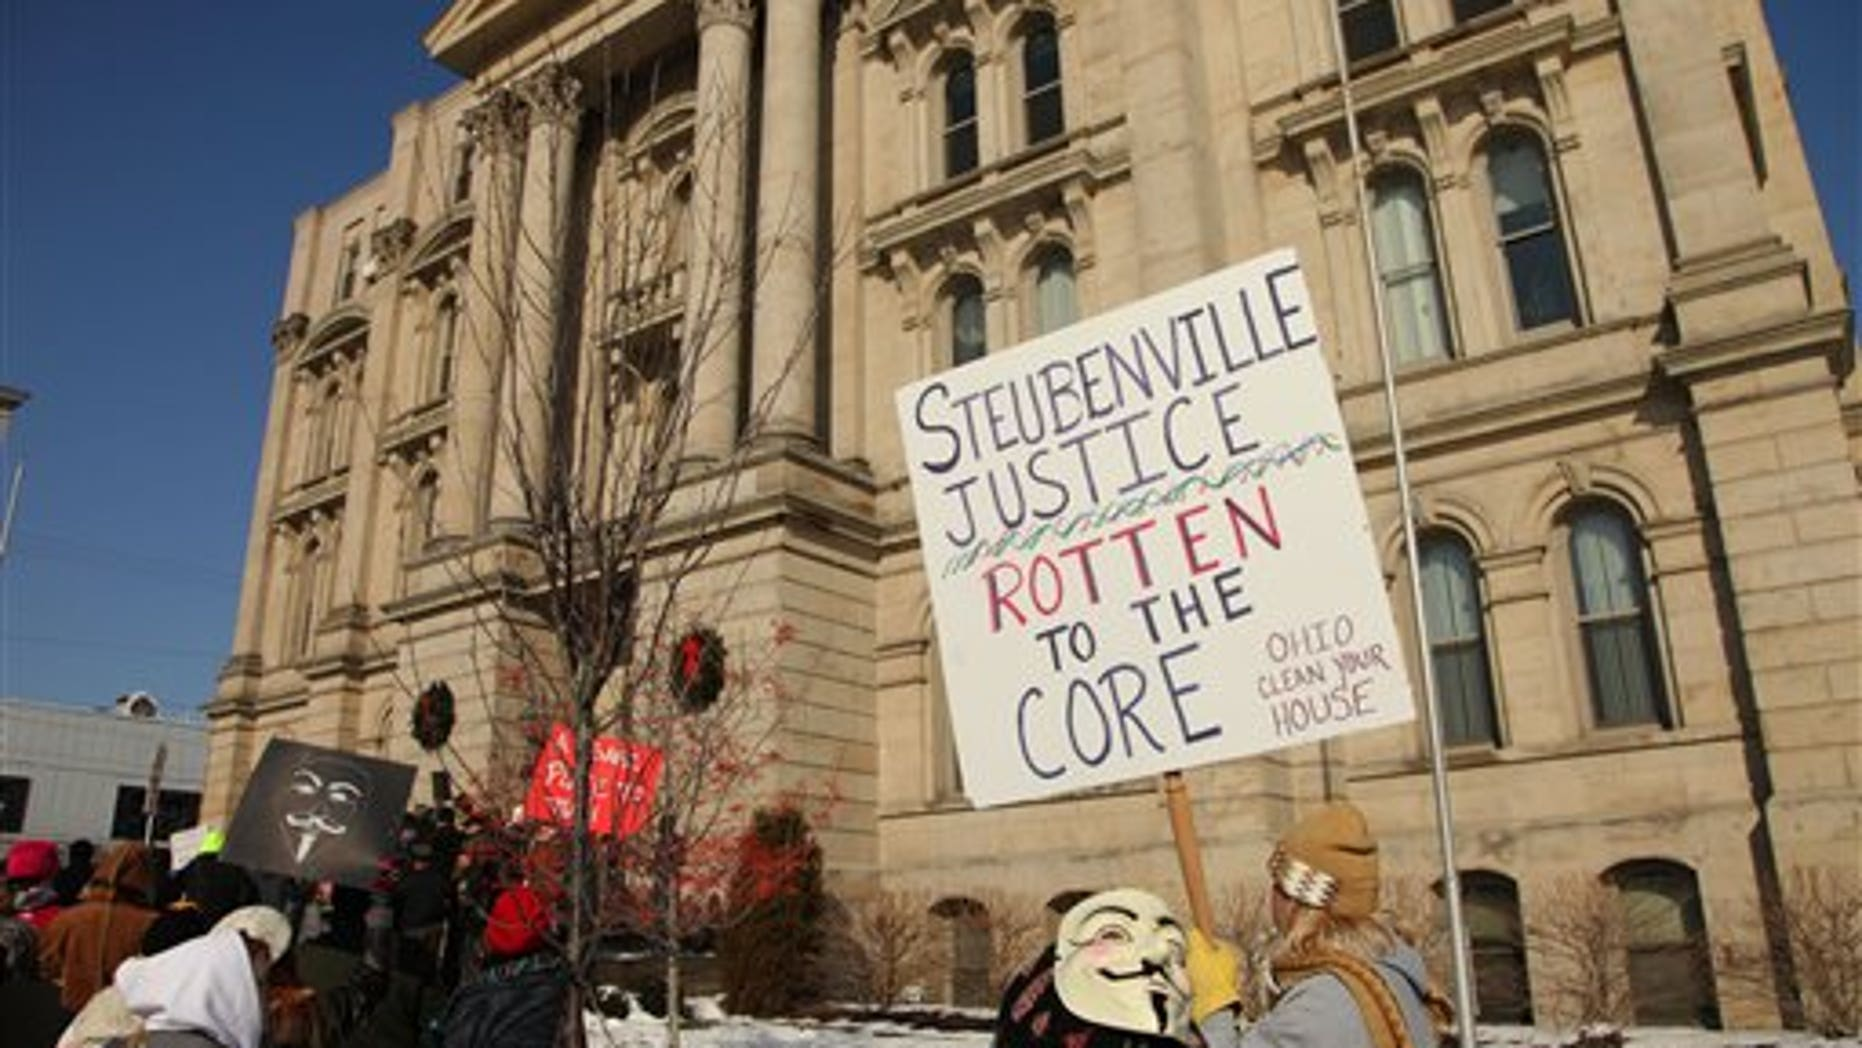 Jan. 5: Activists from the online group KnightSec and Anonymous protest at the Jefferson County Courthouse in Steubenville, Ohio. Members of the group said they are outraged over what they contend is a cover-up in a case involving the alleged rape of a teenage girl by Steubenville High School student-athletes that reportedly occurred in 2012.